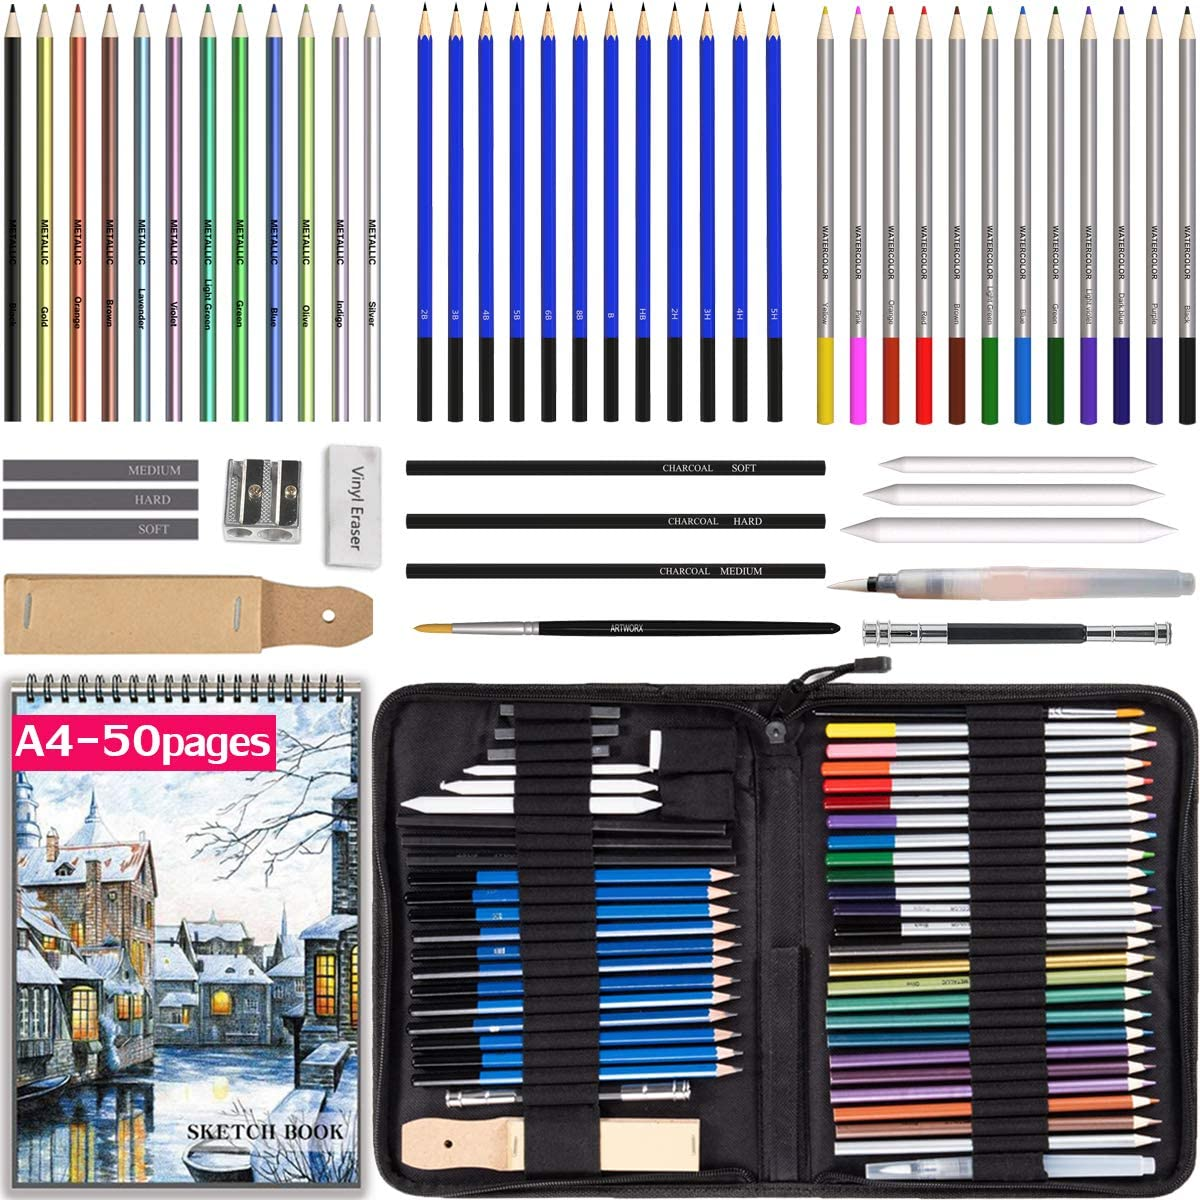 Sketch Pencils n Accessories Included for Kids n Adults Drawing Pencils with Sketchbook 50 Pages Colored Pencils 53pcs Set in a Portable Zipper Case Watercolor n Metallic Pencils Beginners n Pros